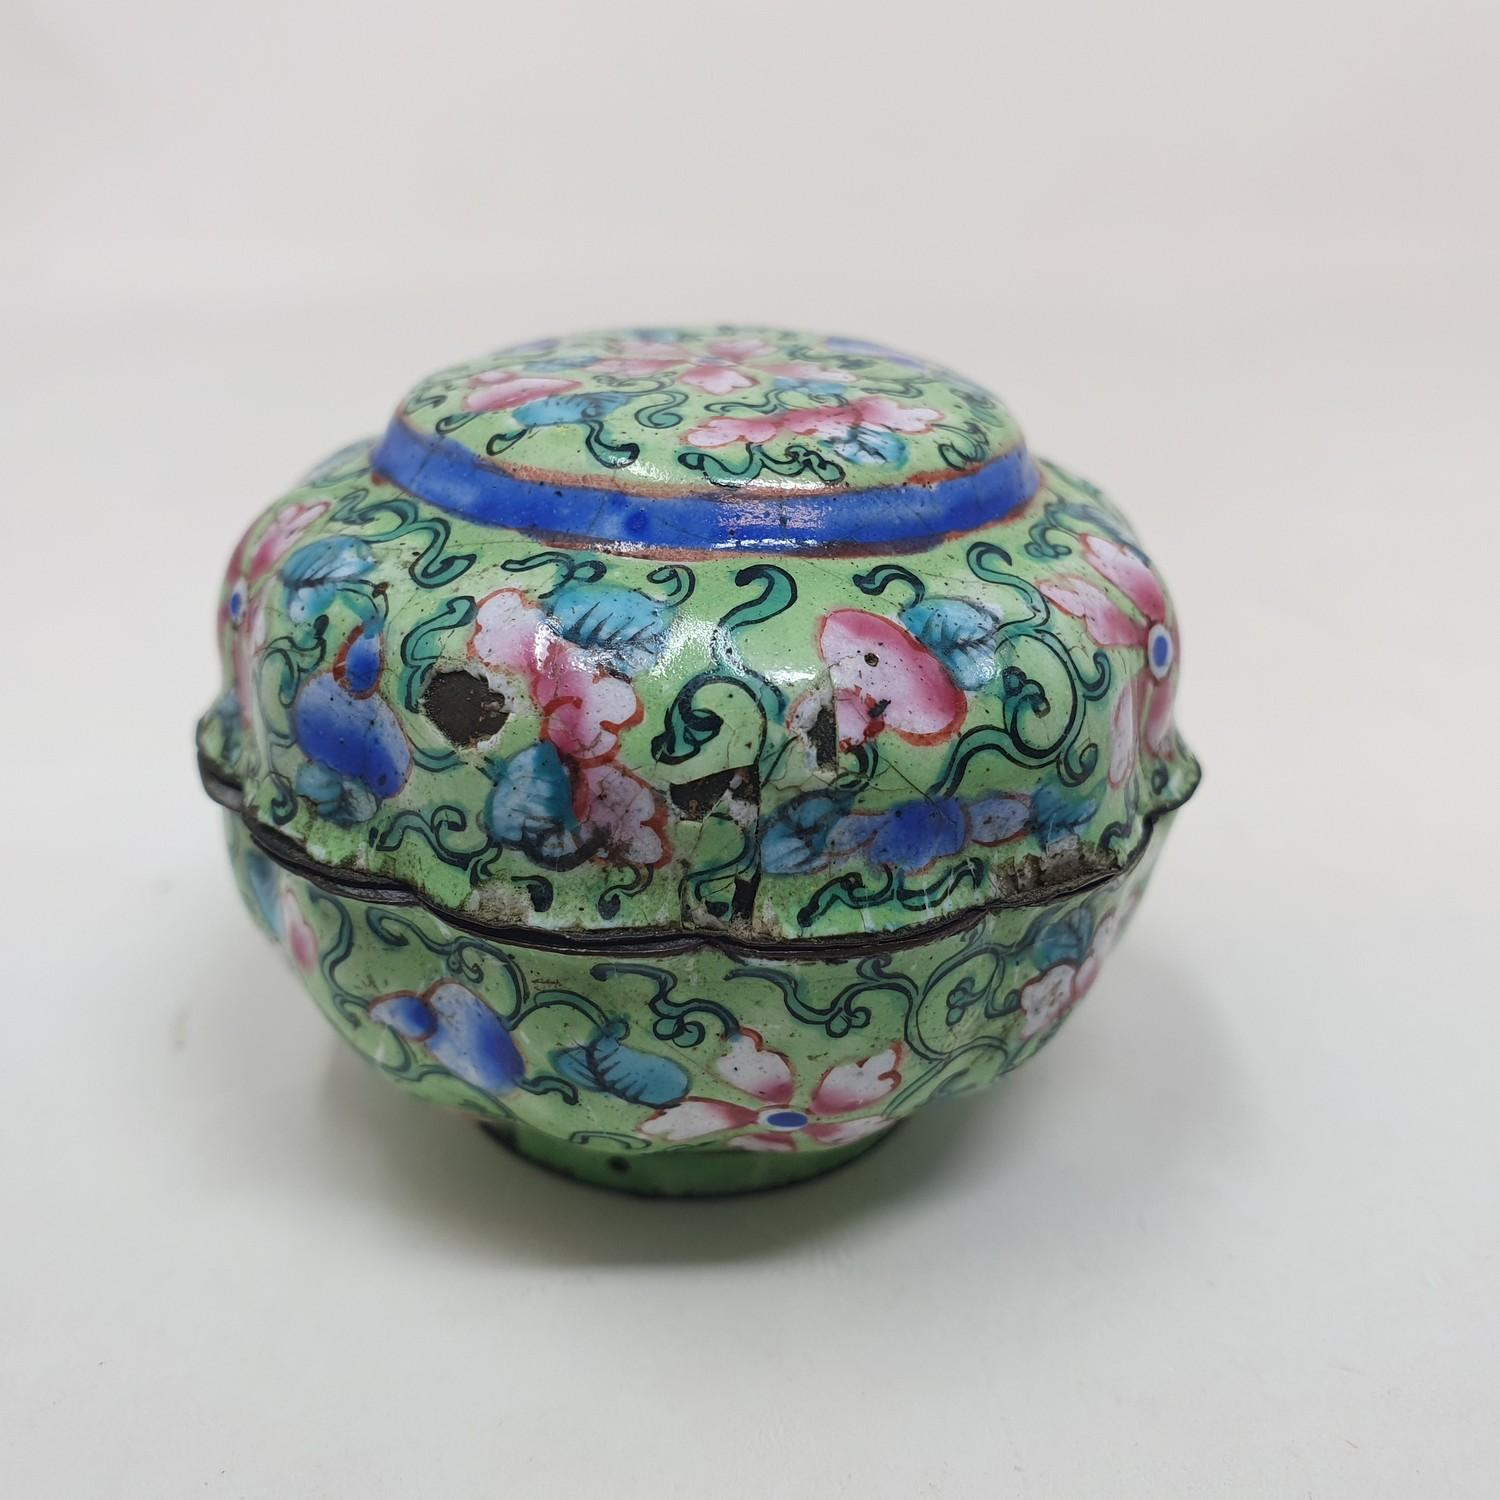 A Canton enamel pot and cover, decorated flowers on a green ground, 3 cm diameter - Image 4 of 5